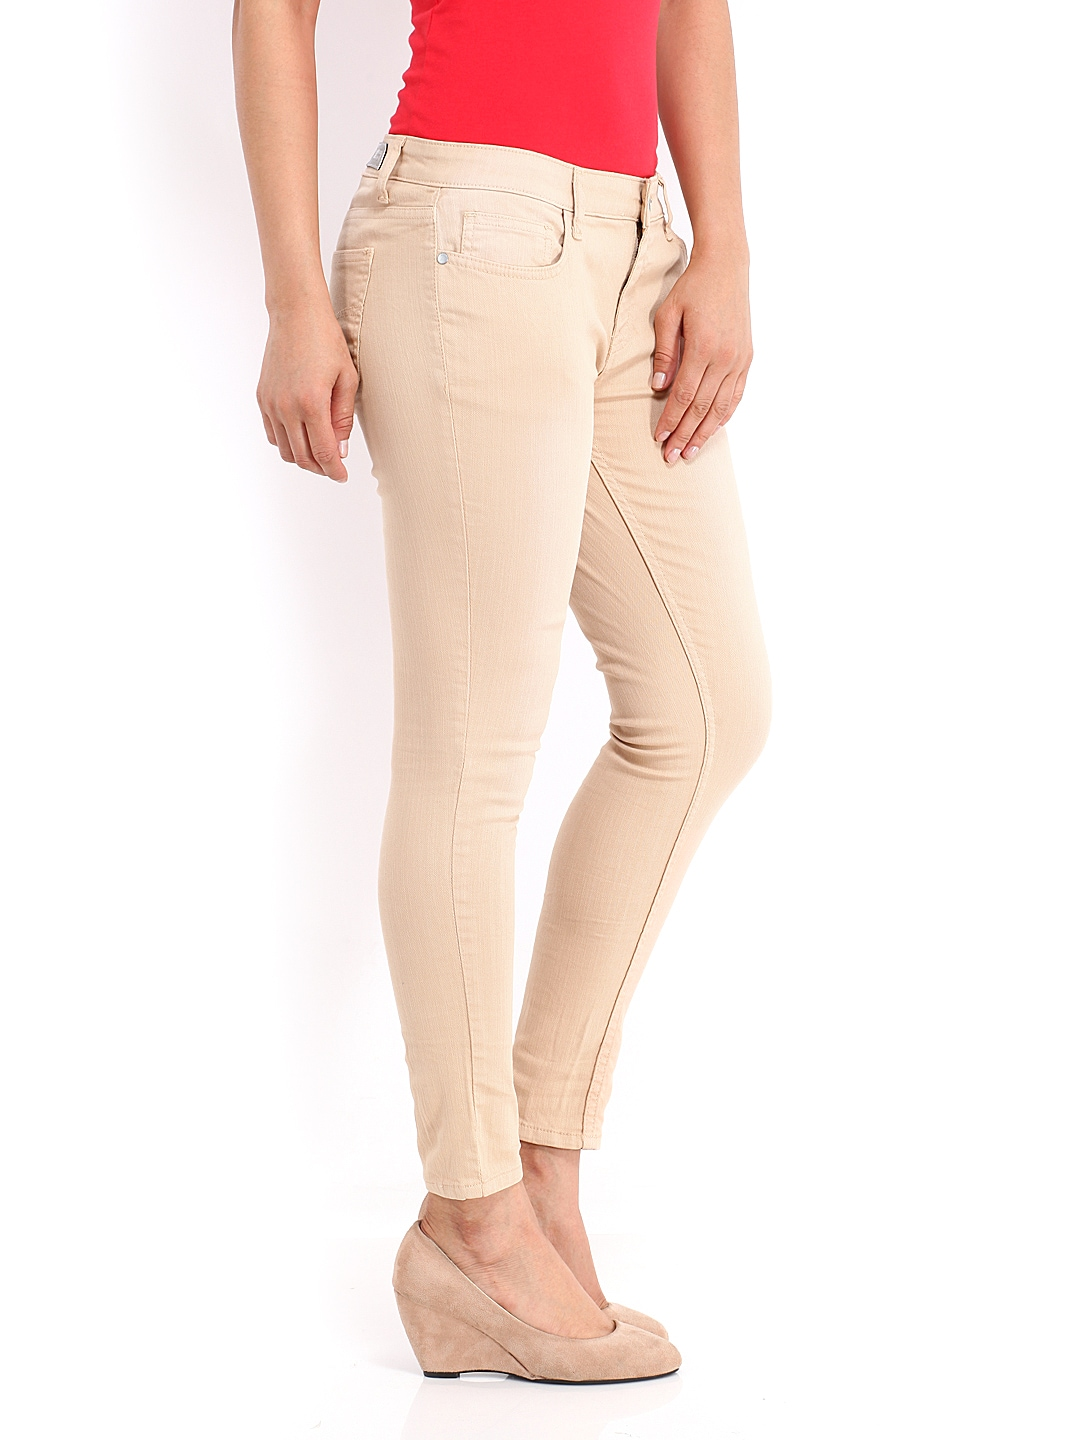 Tan Jeans For Women - Jeans Am